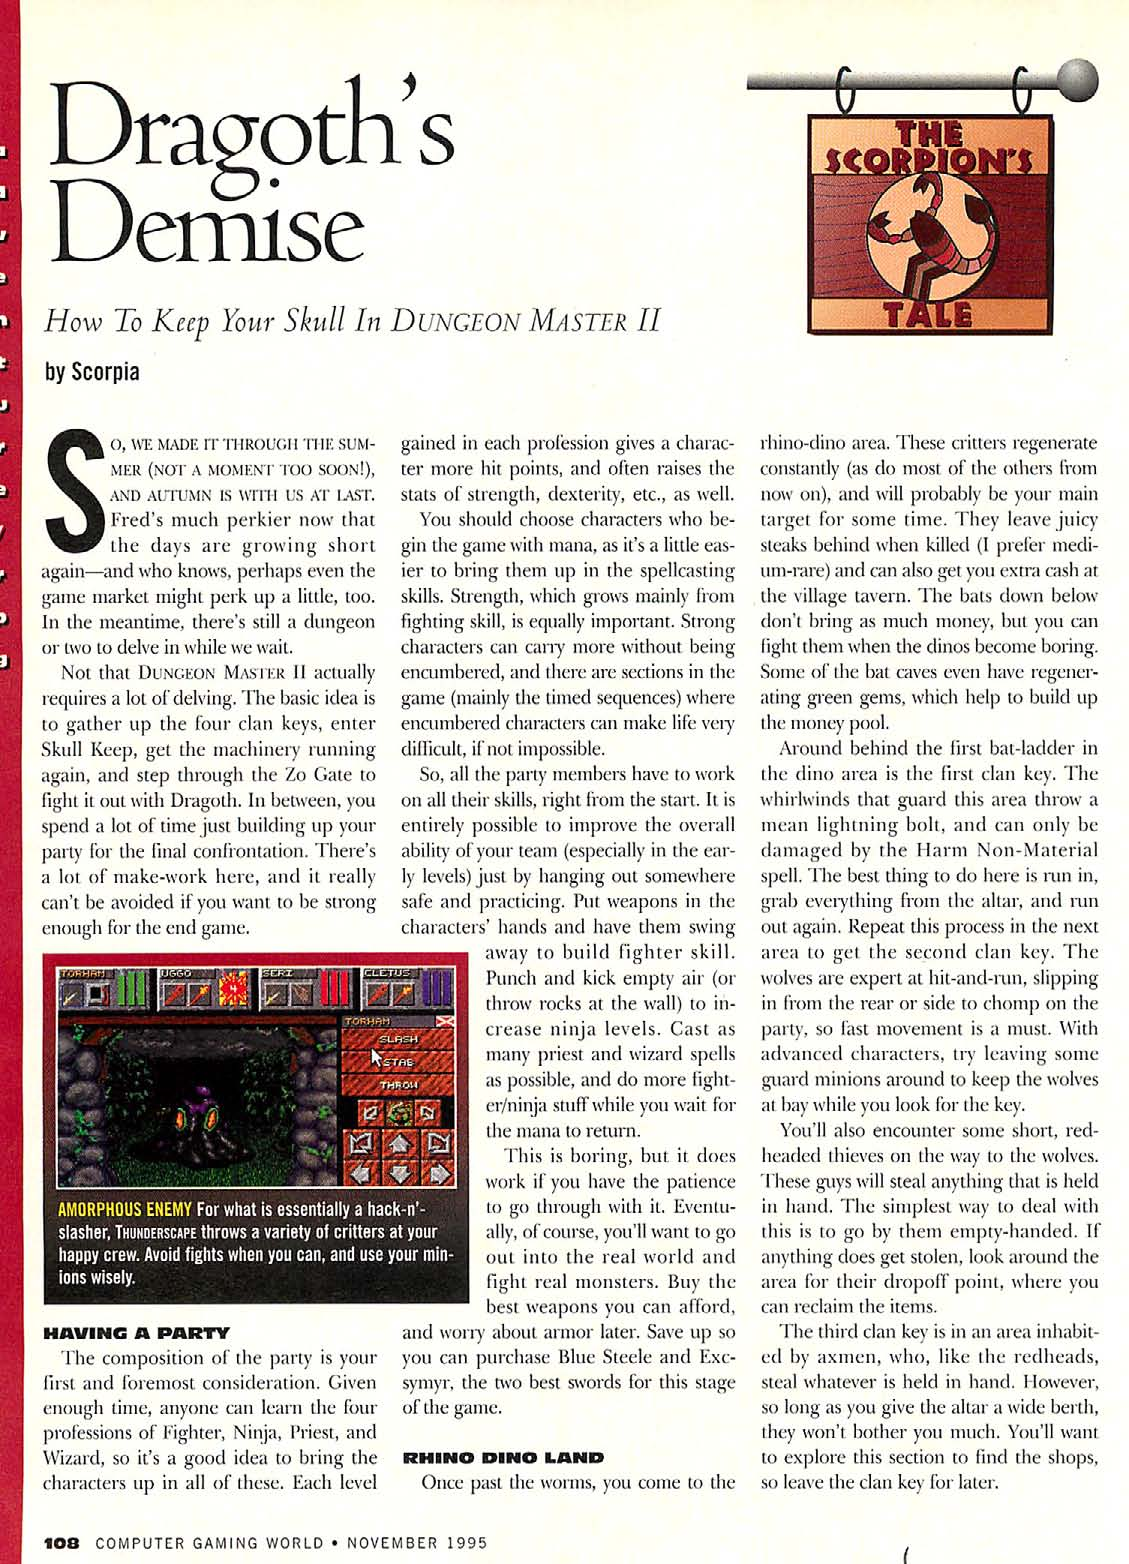 Dungeon Master II Guide published in American magazine &amp;#039;Computer Gaming World&amp;#039;, Issue #136 November 1995, Page 108